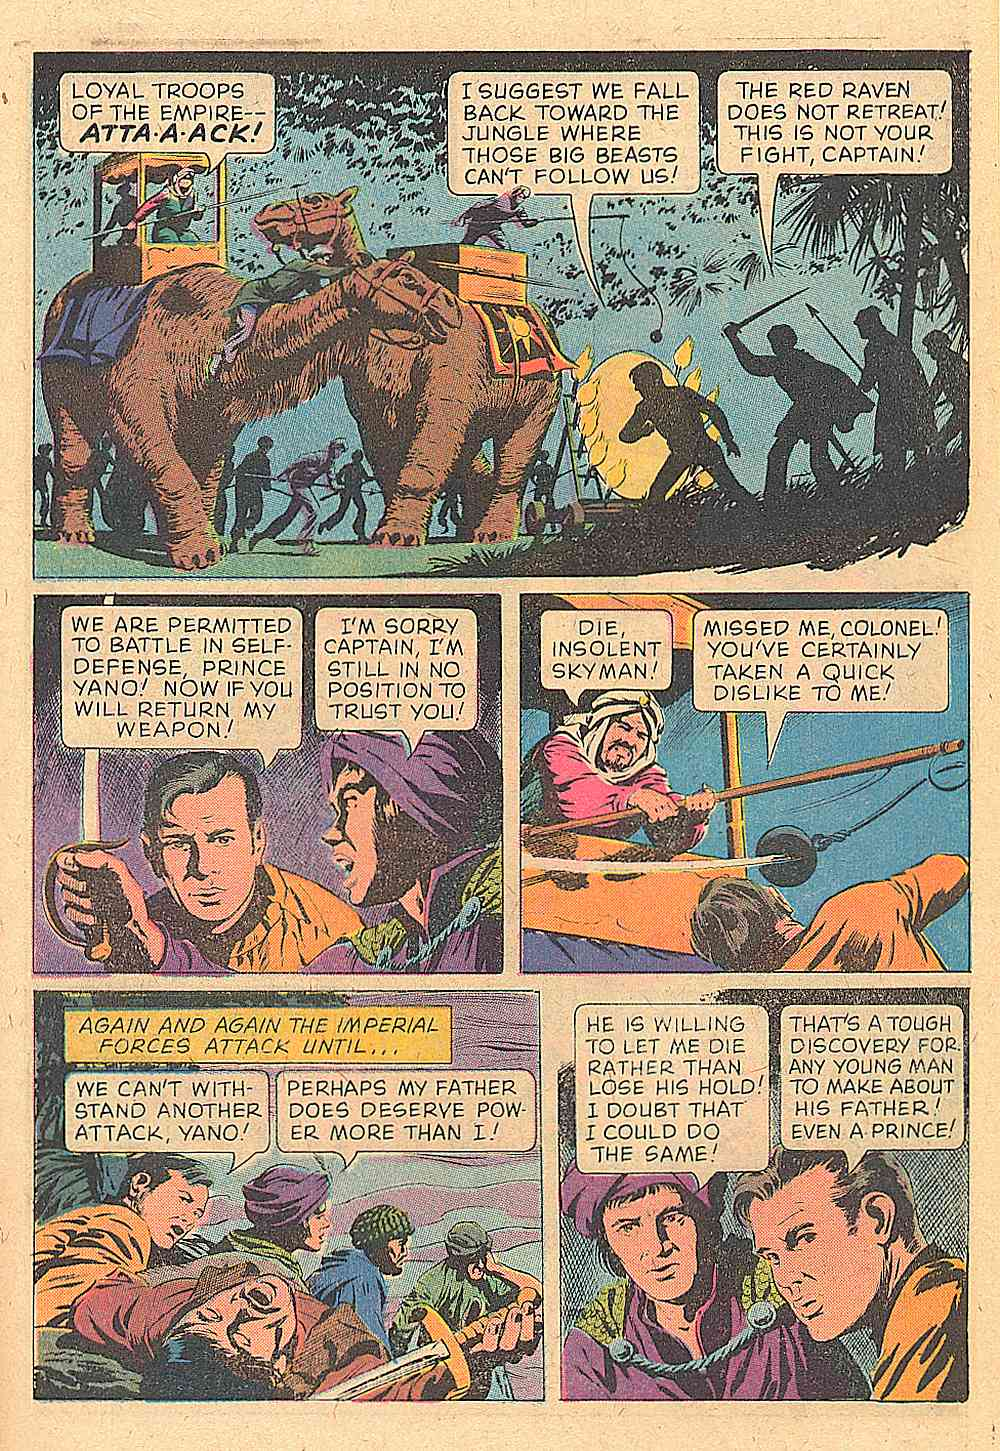 Star Trek (1967) #44 #44 - English 22